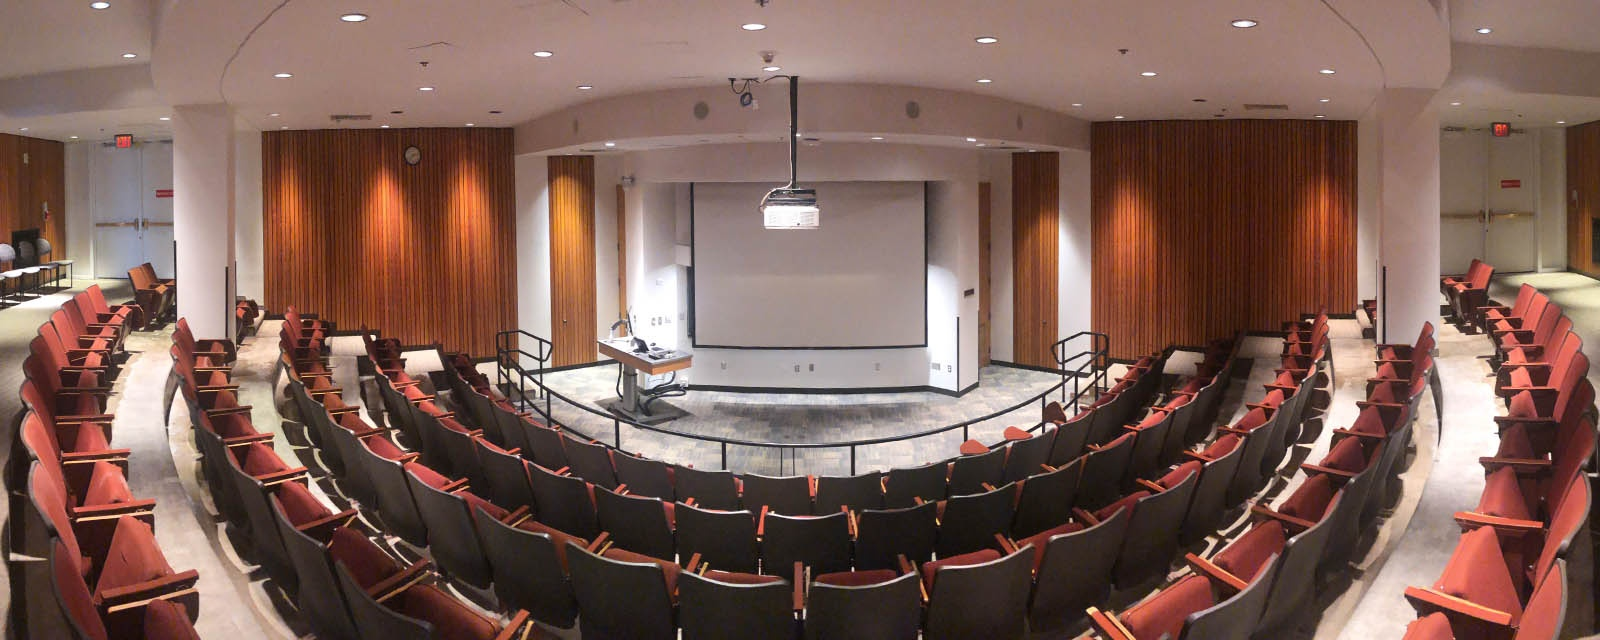 Panorama Crouse Hinds 010 from back of room to front of room, chairs stationary with flip out desk, teaching station at right front